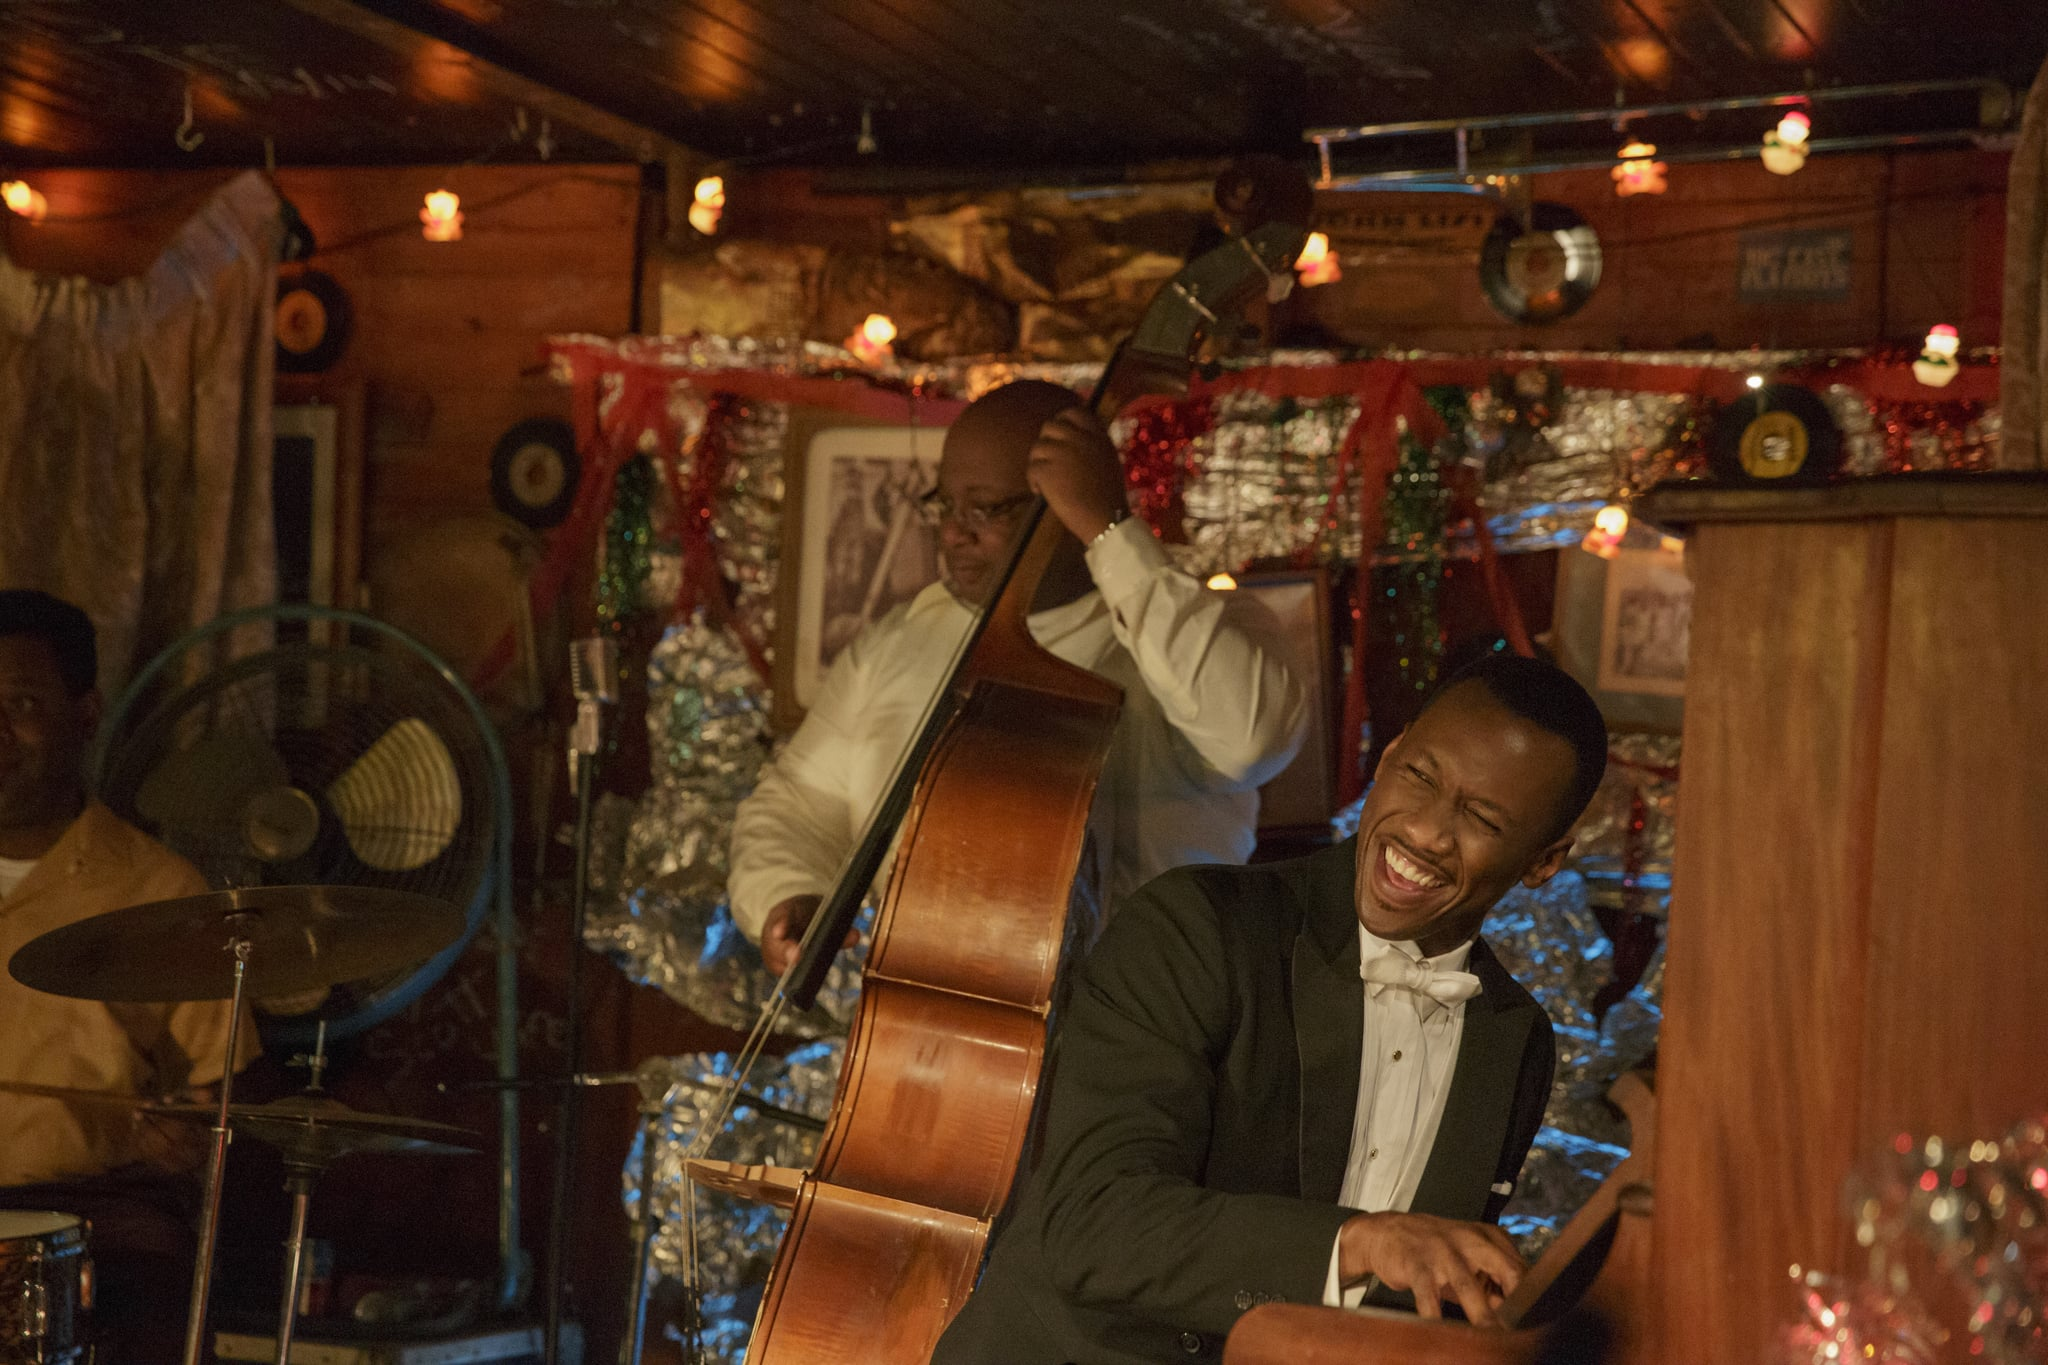 Dr. Donald Shirley (Mahershala Ali, right) gives an impromptu performance in